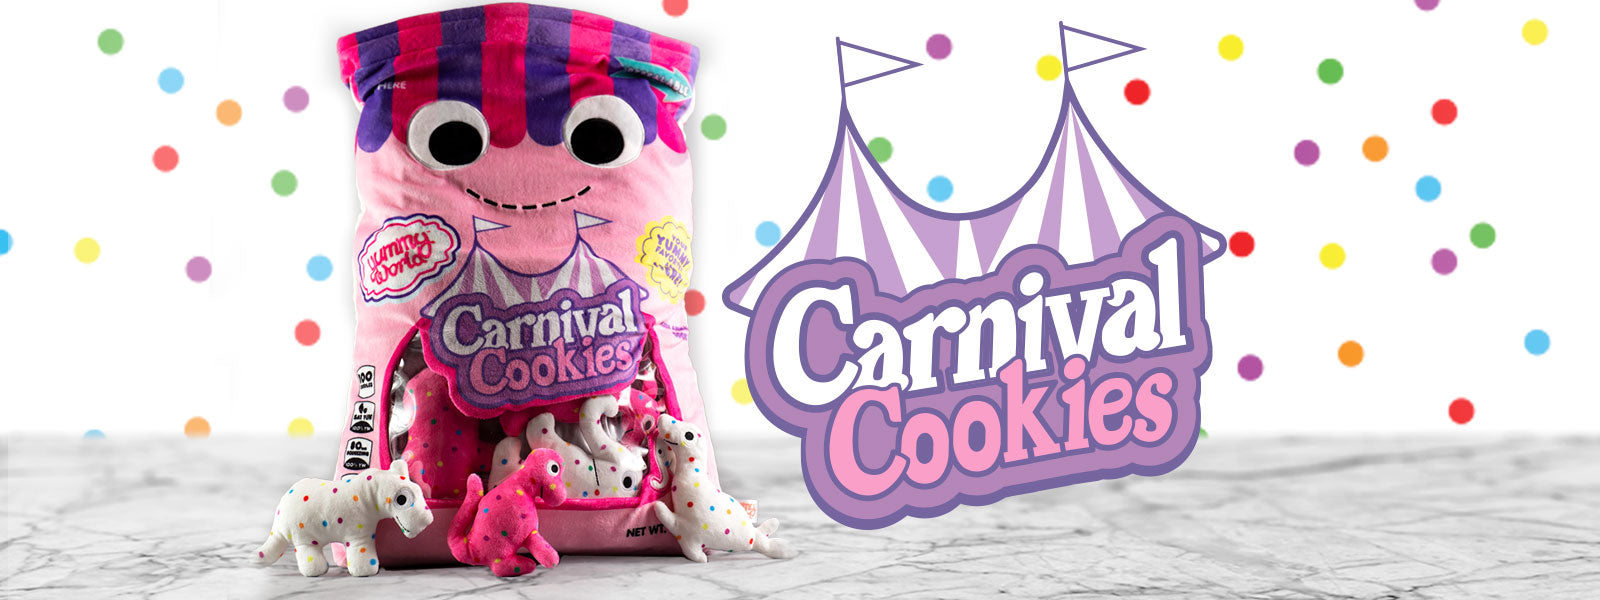 Chloe and the Carnival Cookies Circus Animal Cookies Plush by Kidrobot ...